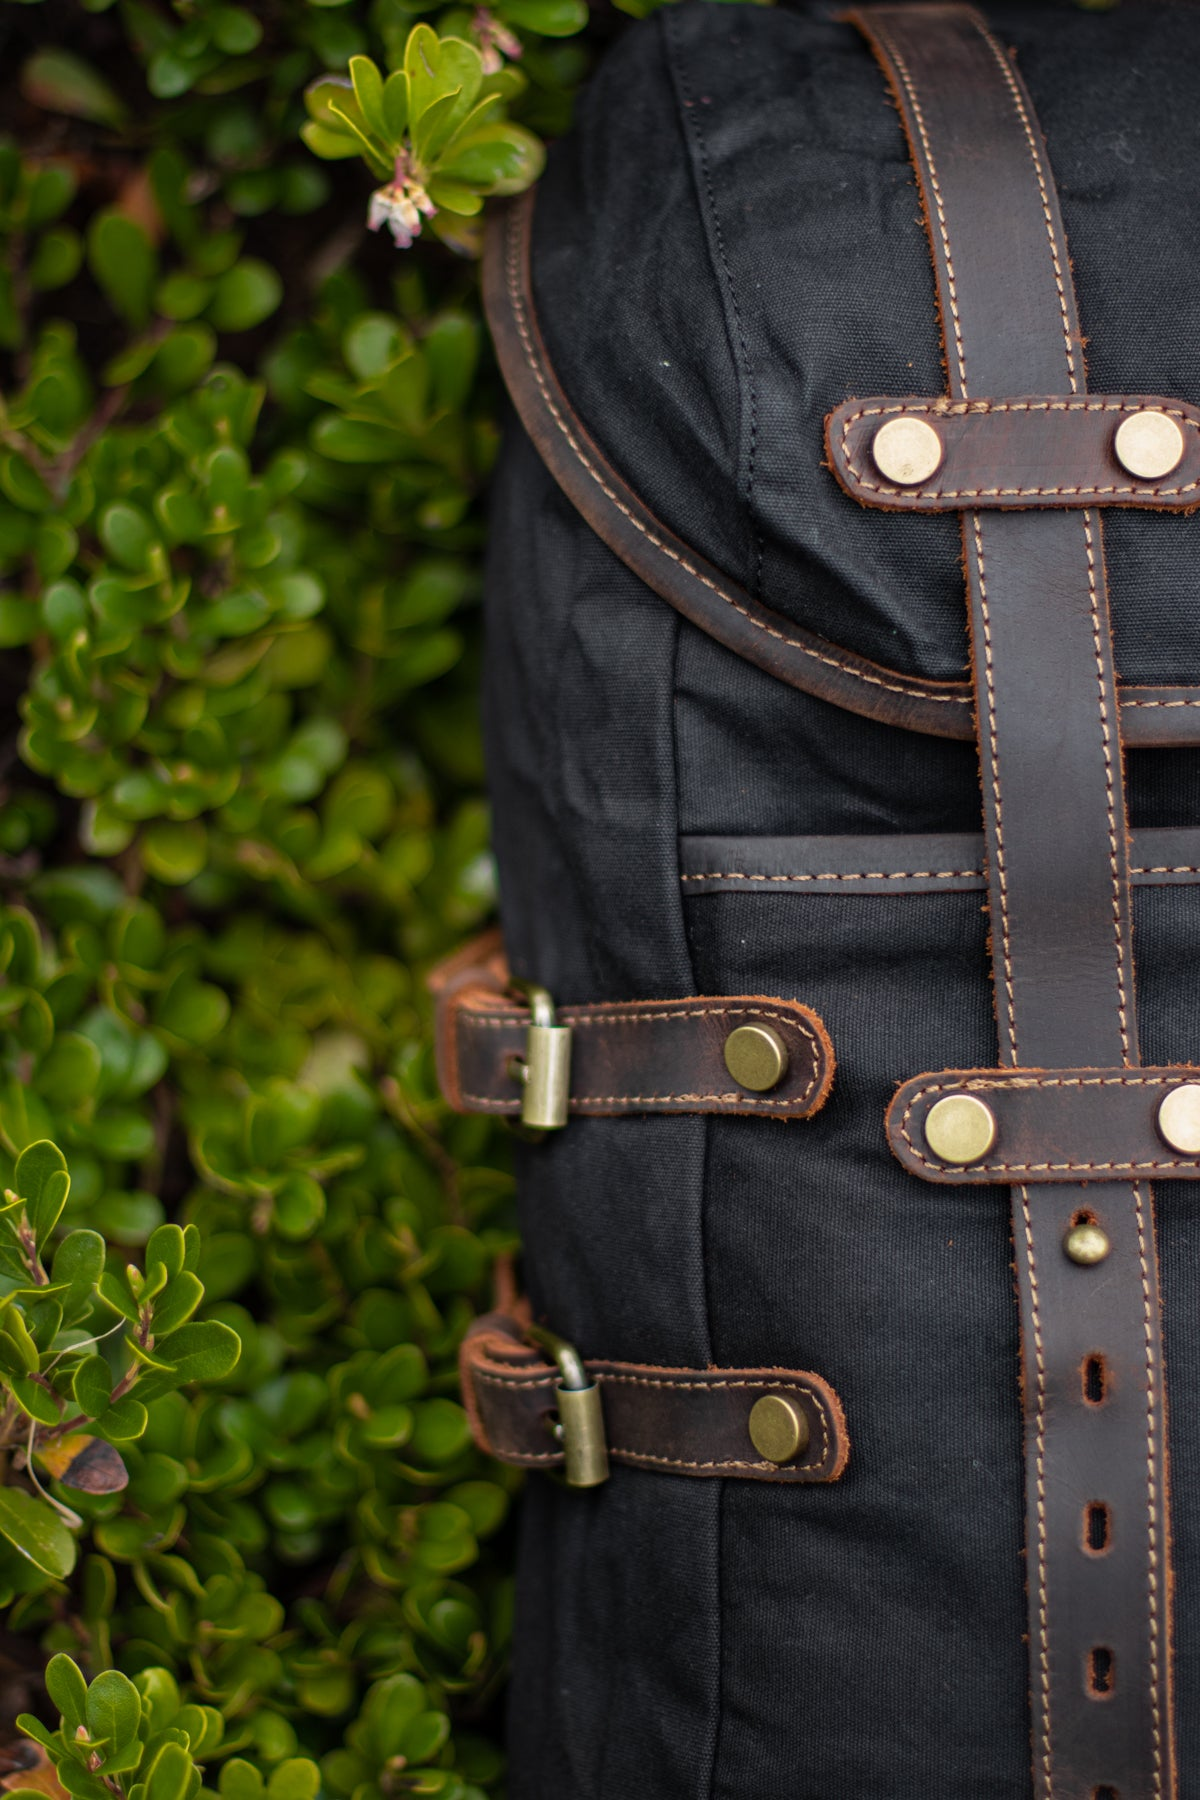 vintage style backpack leather straps